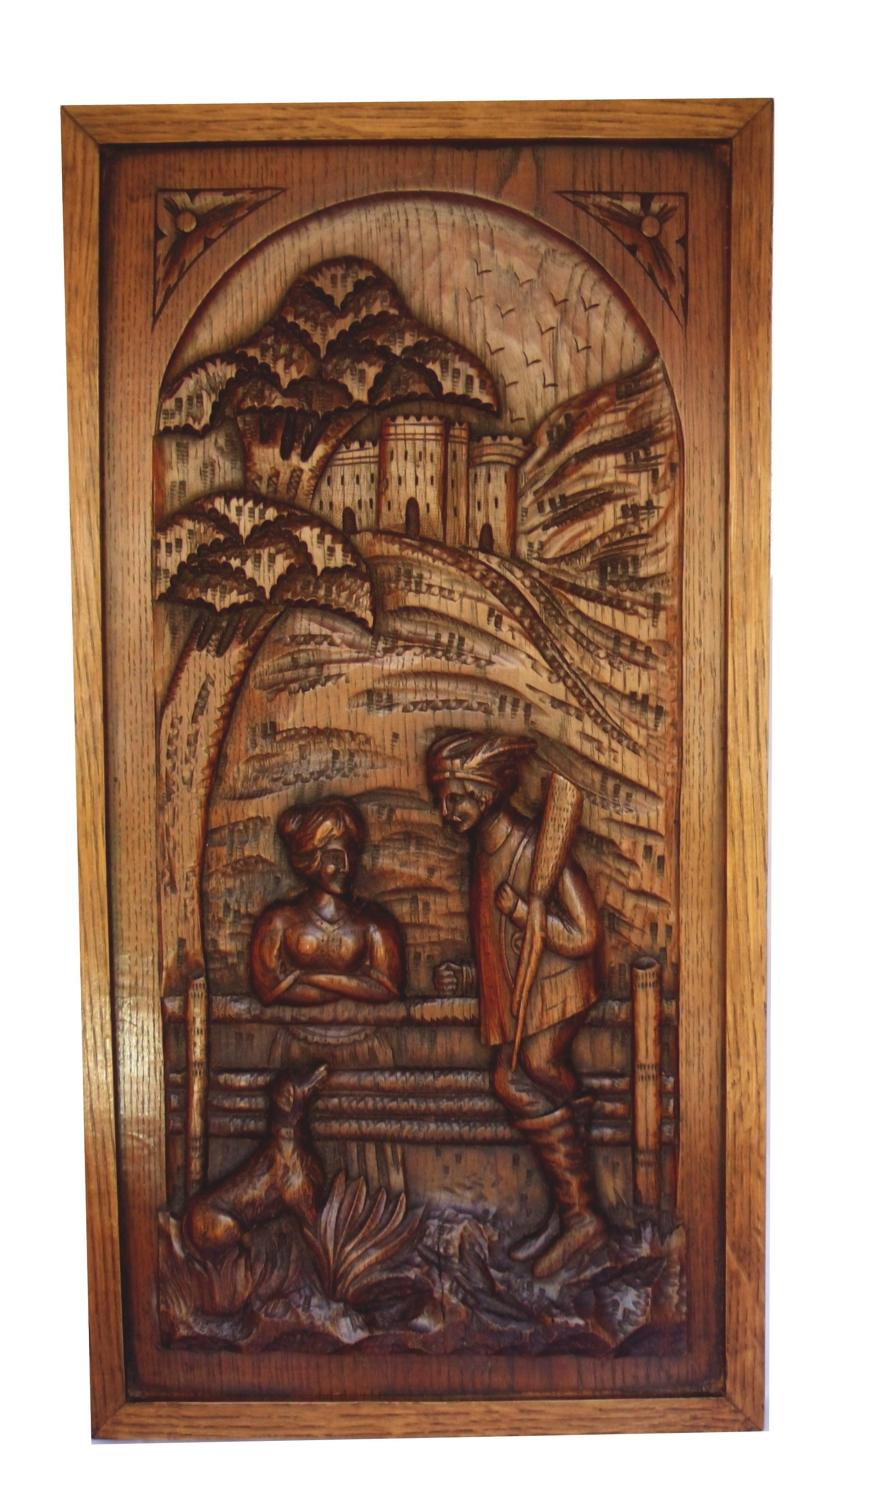 19th century Austrian carved wall plaque